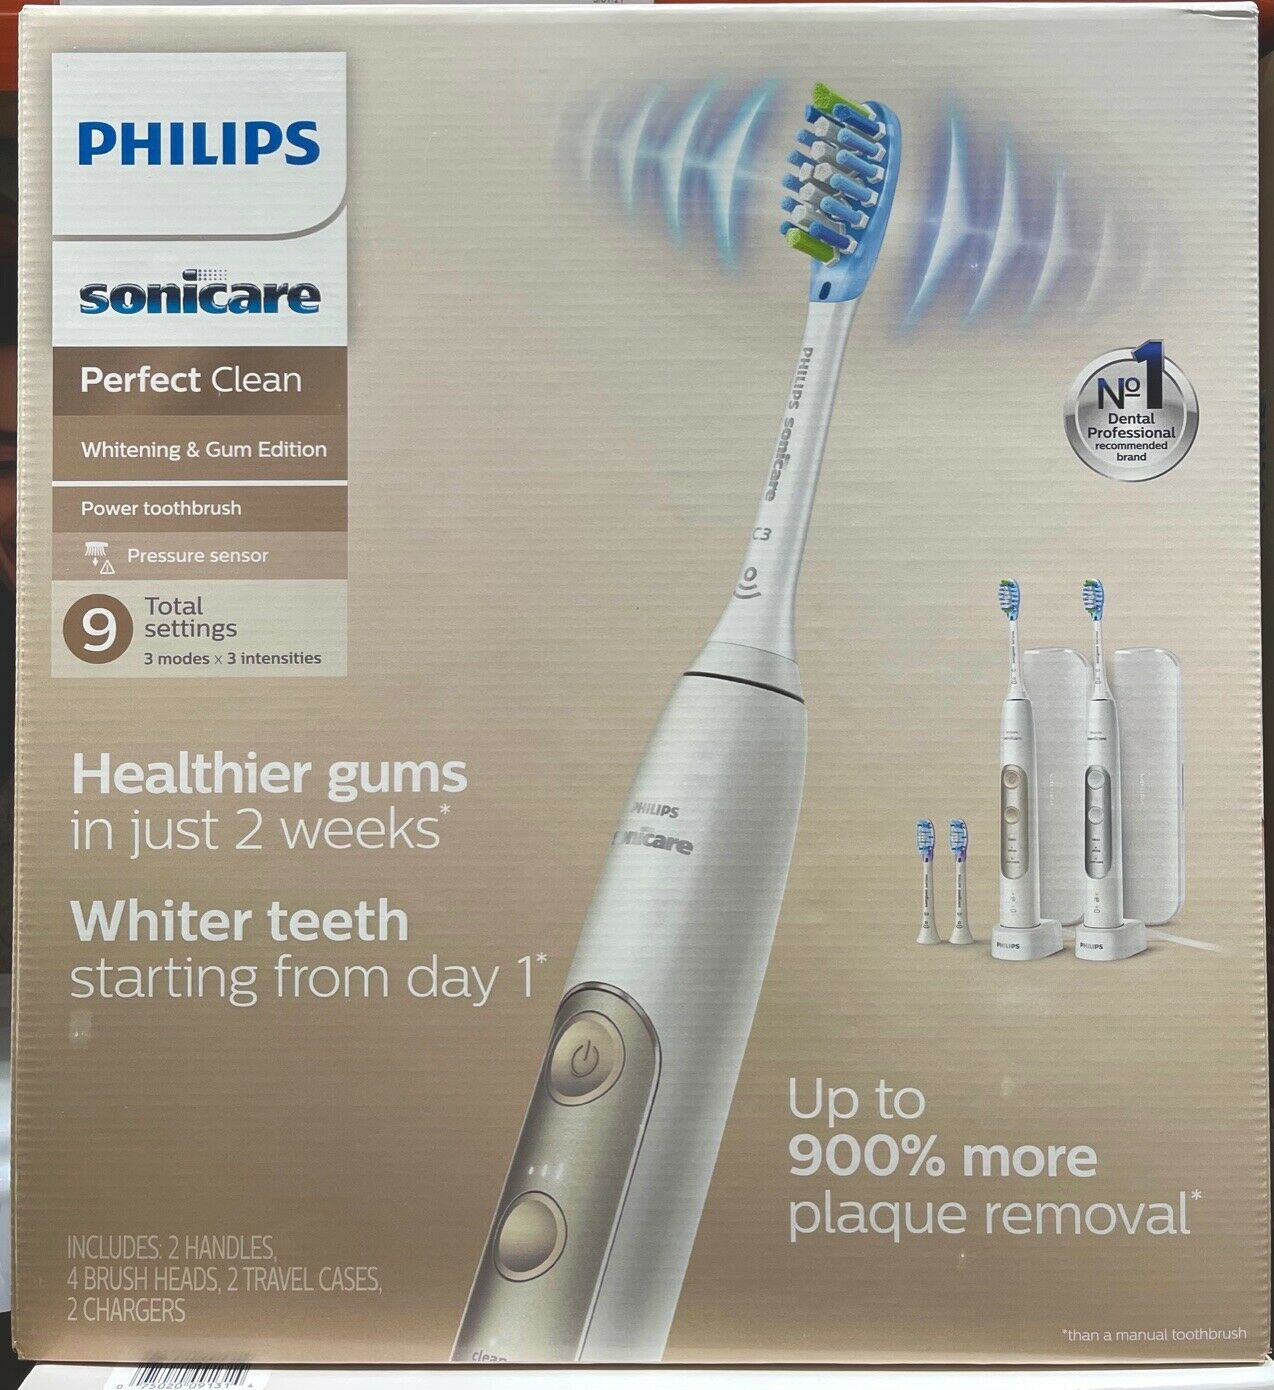 philips sonicare flexcare whitening edition manual